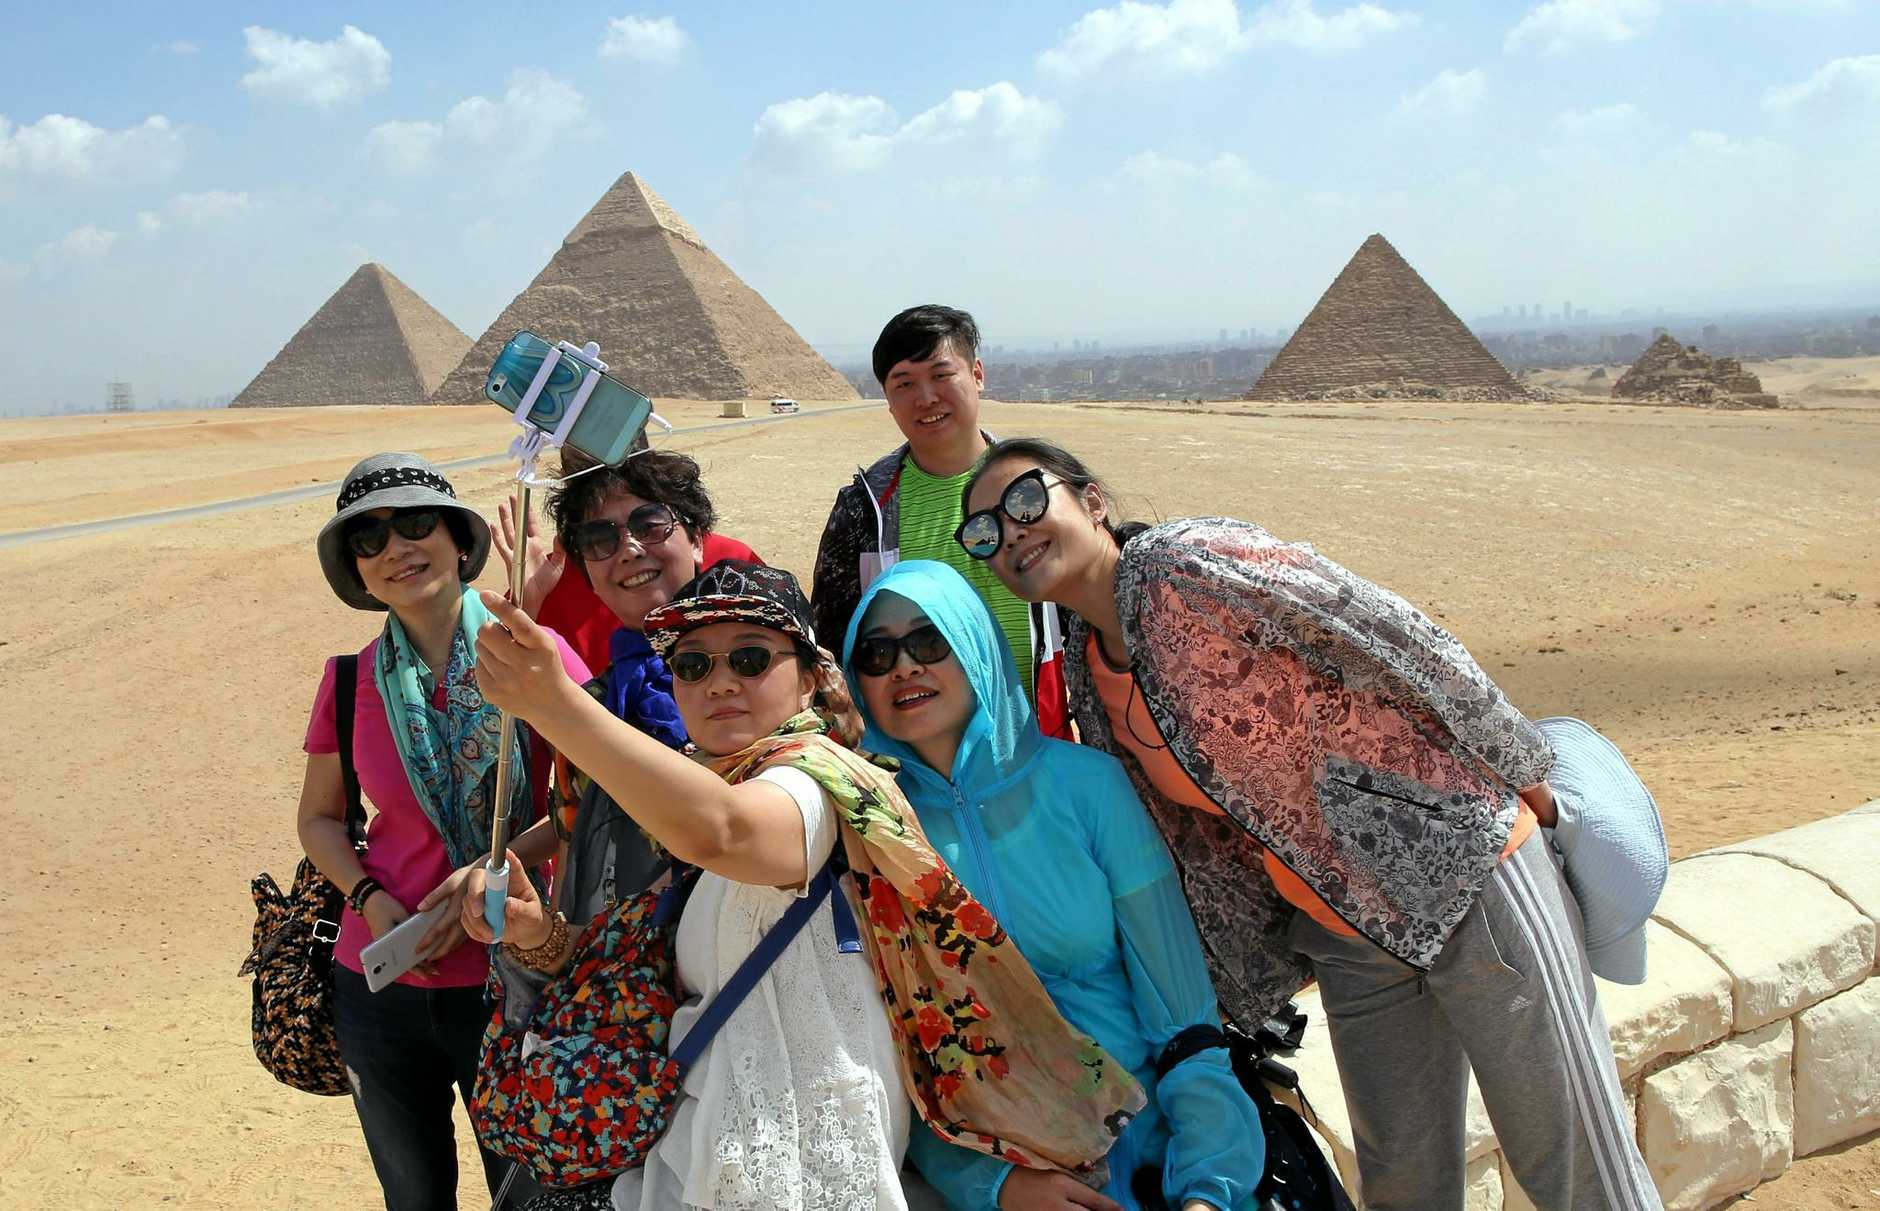 Tourists get a 'selfie' with the pyramids in Giza, Egypt. The tourism industry is one of the country's main sources of its much-needed foreign currency.